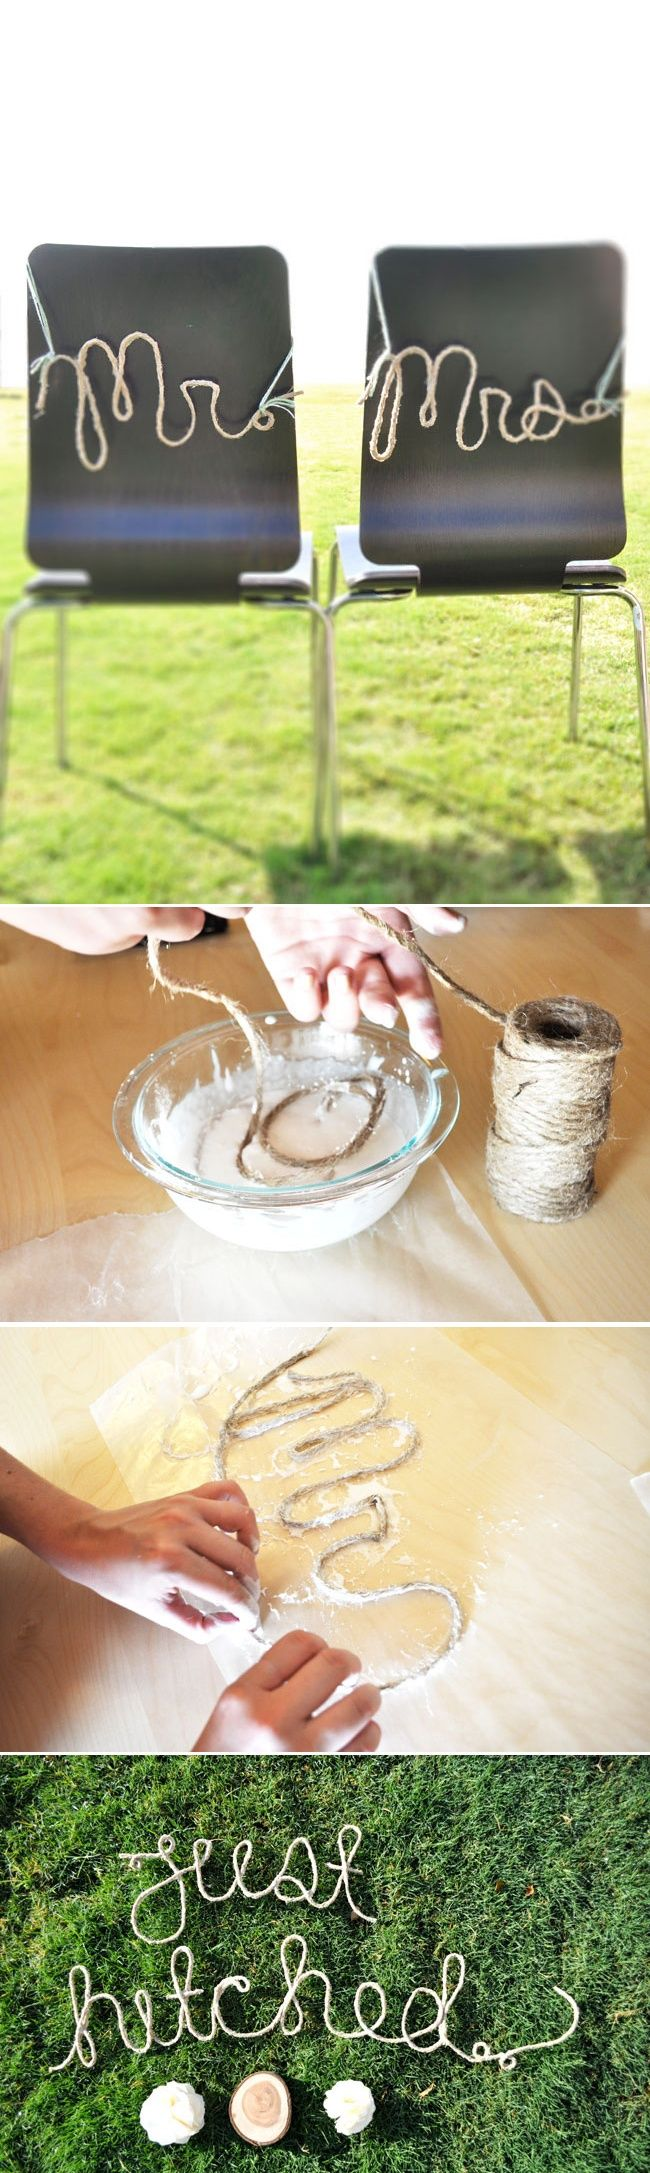 diy rope words - tutorial from green wedding shoes, here: http://greenweddingshoes.com/diy-rope-words-for-your-wedding-day/